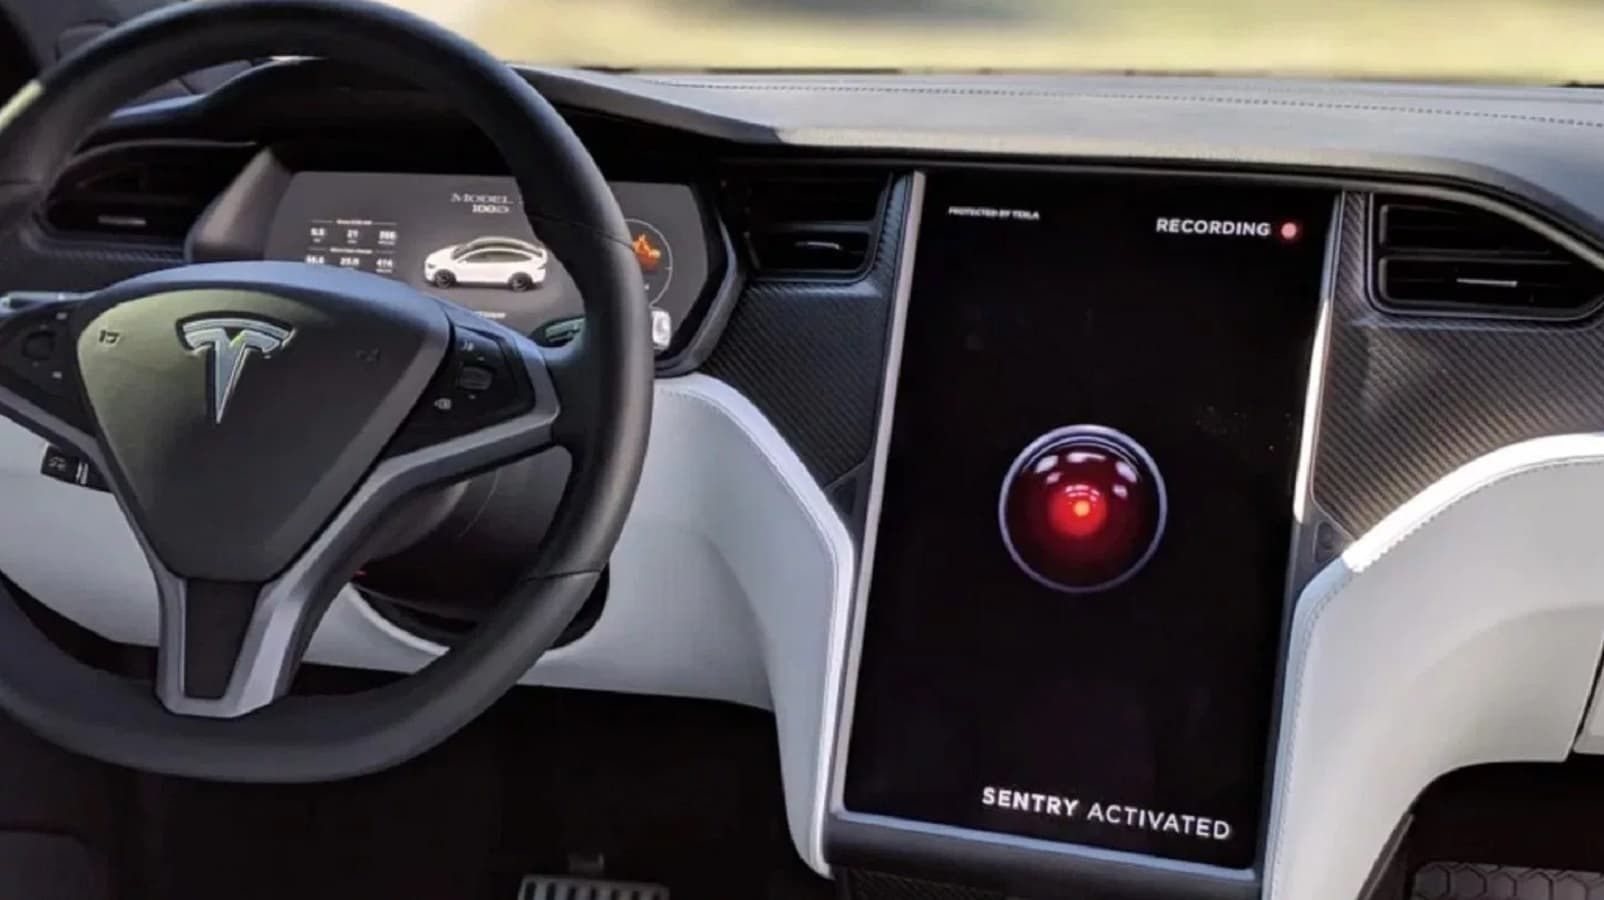 tesla car showing off sentry mode on screen